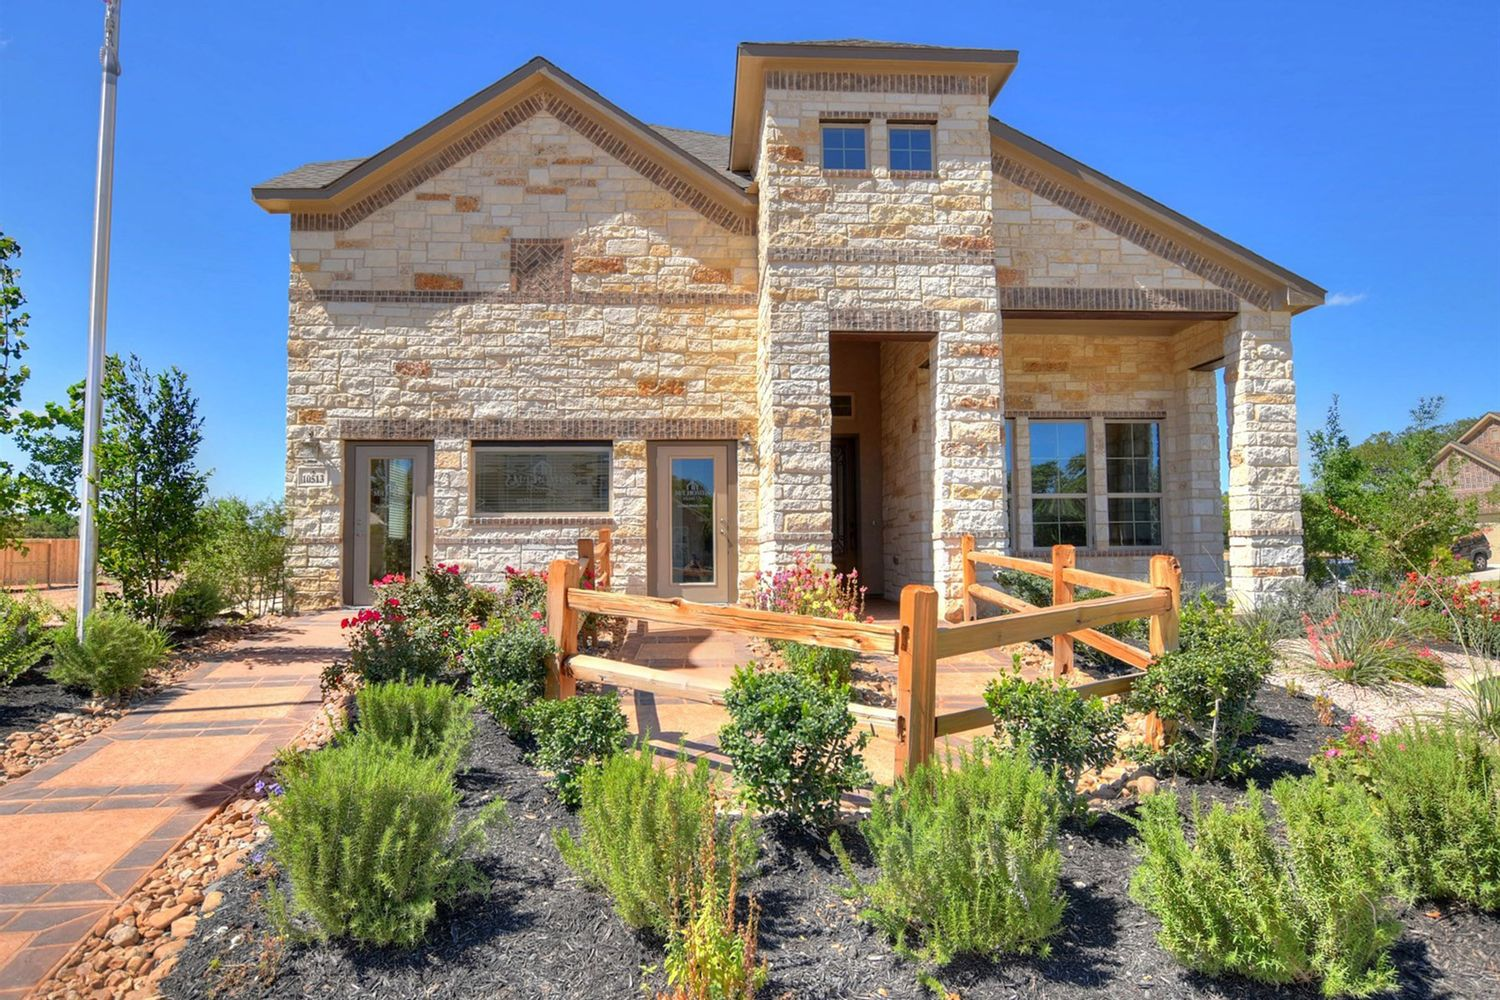 Single Family for Sale at Mountain Laurel 15737 La Subida Trail Helotes, Texas 78023 United States